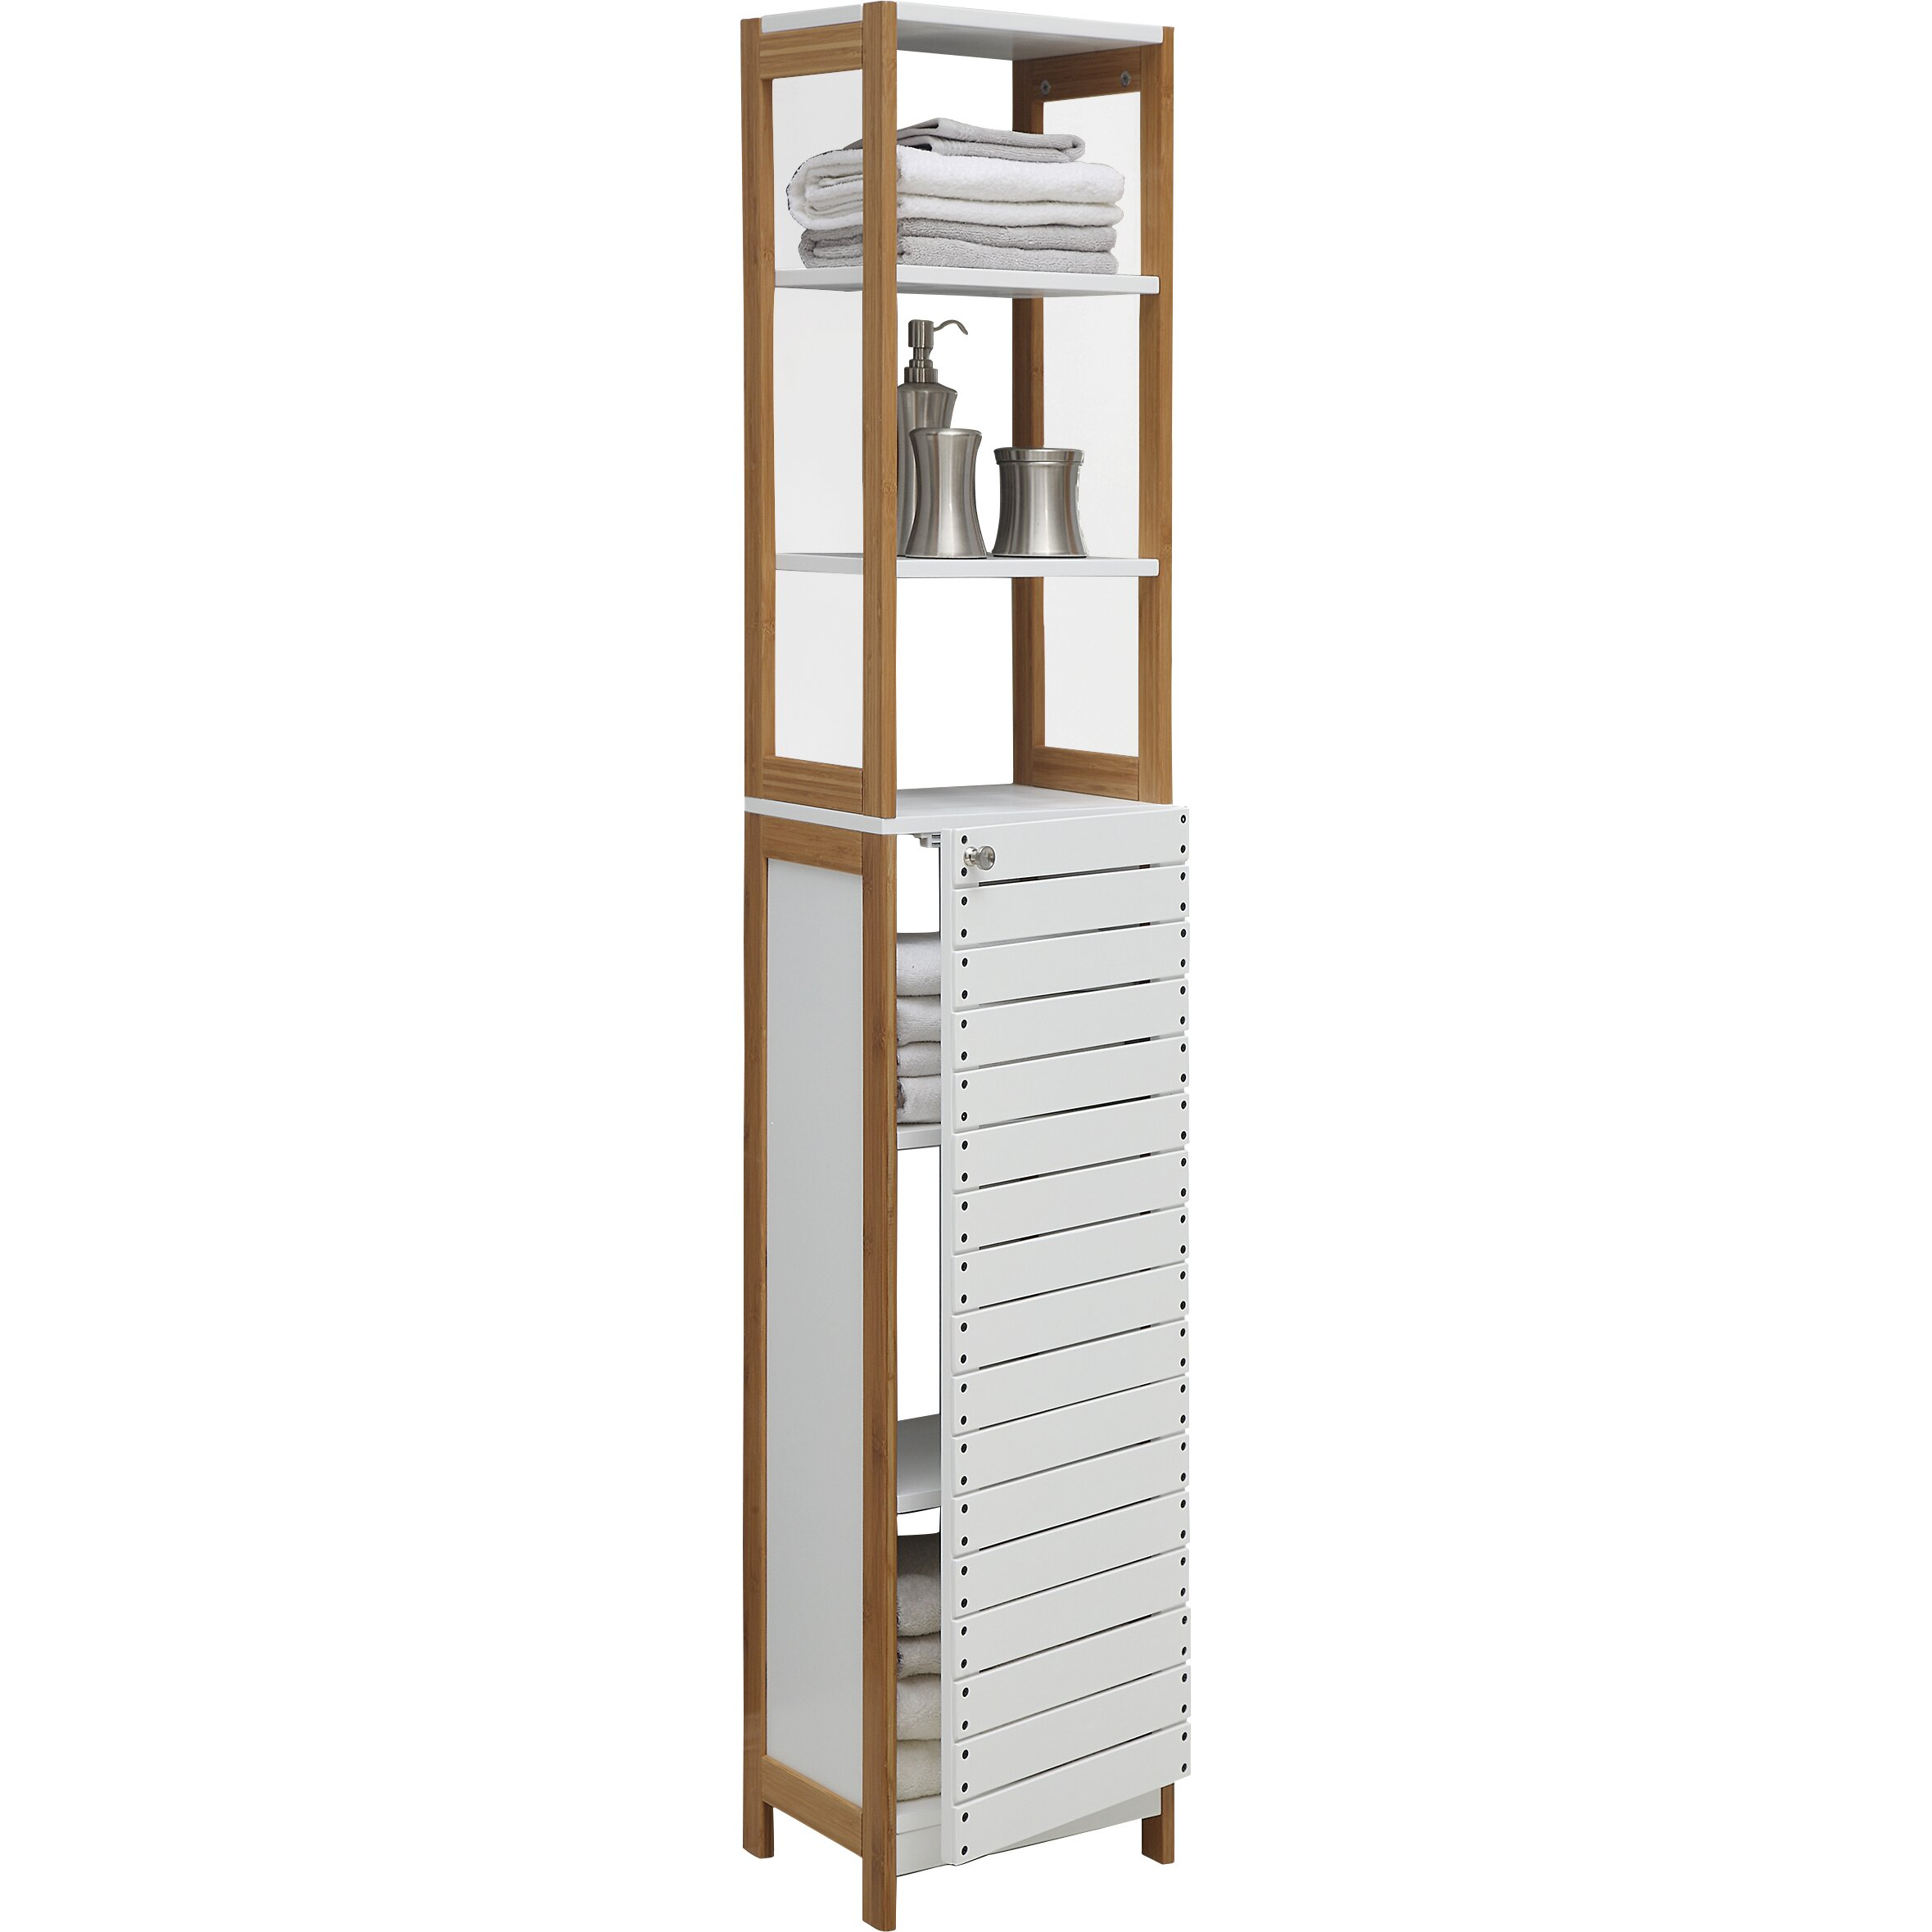 Oia rendition 14 5 x 68 free standing linen tower - Free standing linen cabinets for bathroom ...